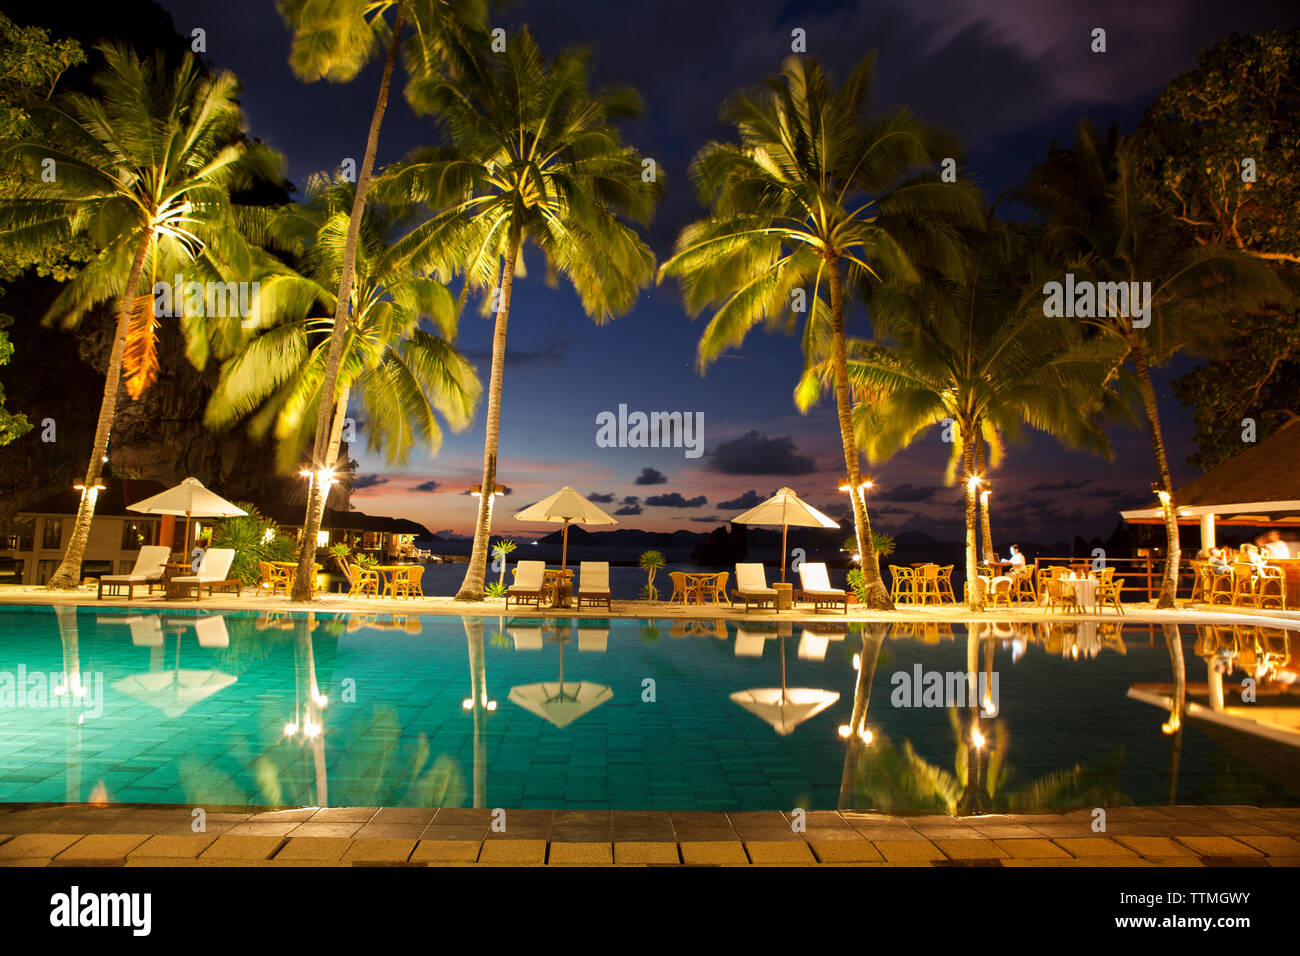 PHILIPPINES, Palawan, El Nido, poolside view at the Lagen Island resort in Bacuit Bay in the South China Sea - Stock Image